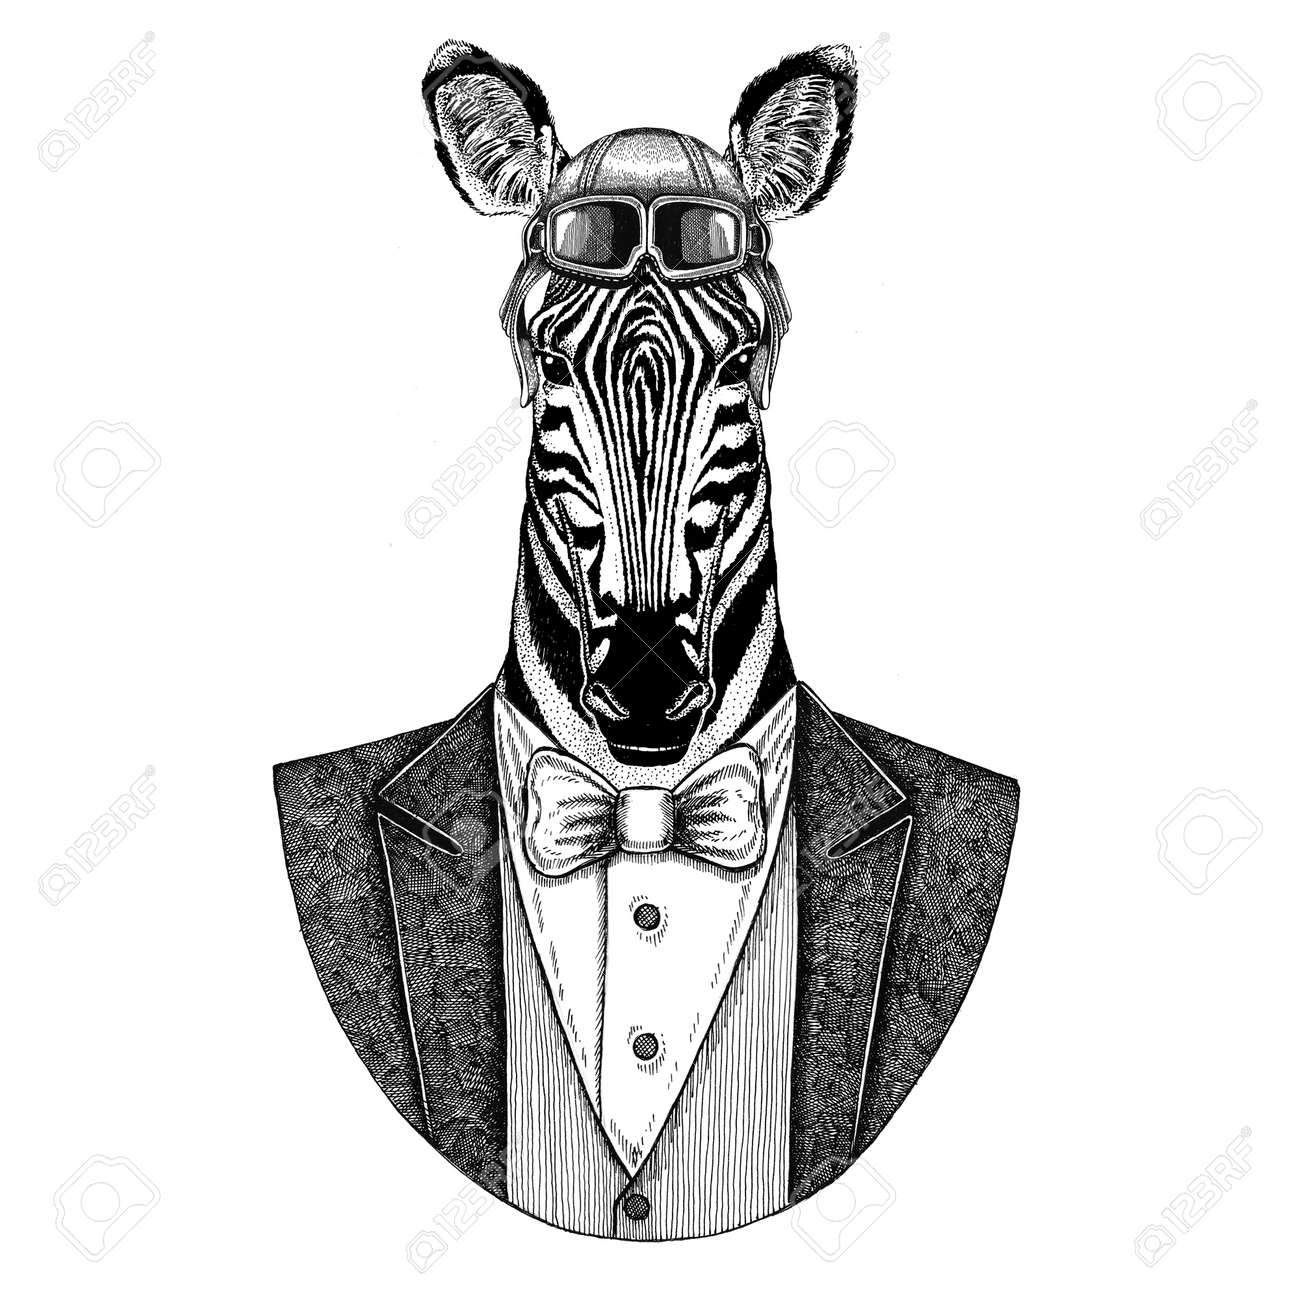 248d90196 Illustration - Zebra Horse Animal wearing aviator helmet and jacket with bow  tie Flying club Hand drawn illustration for tattoo